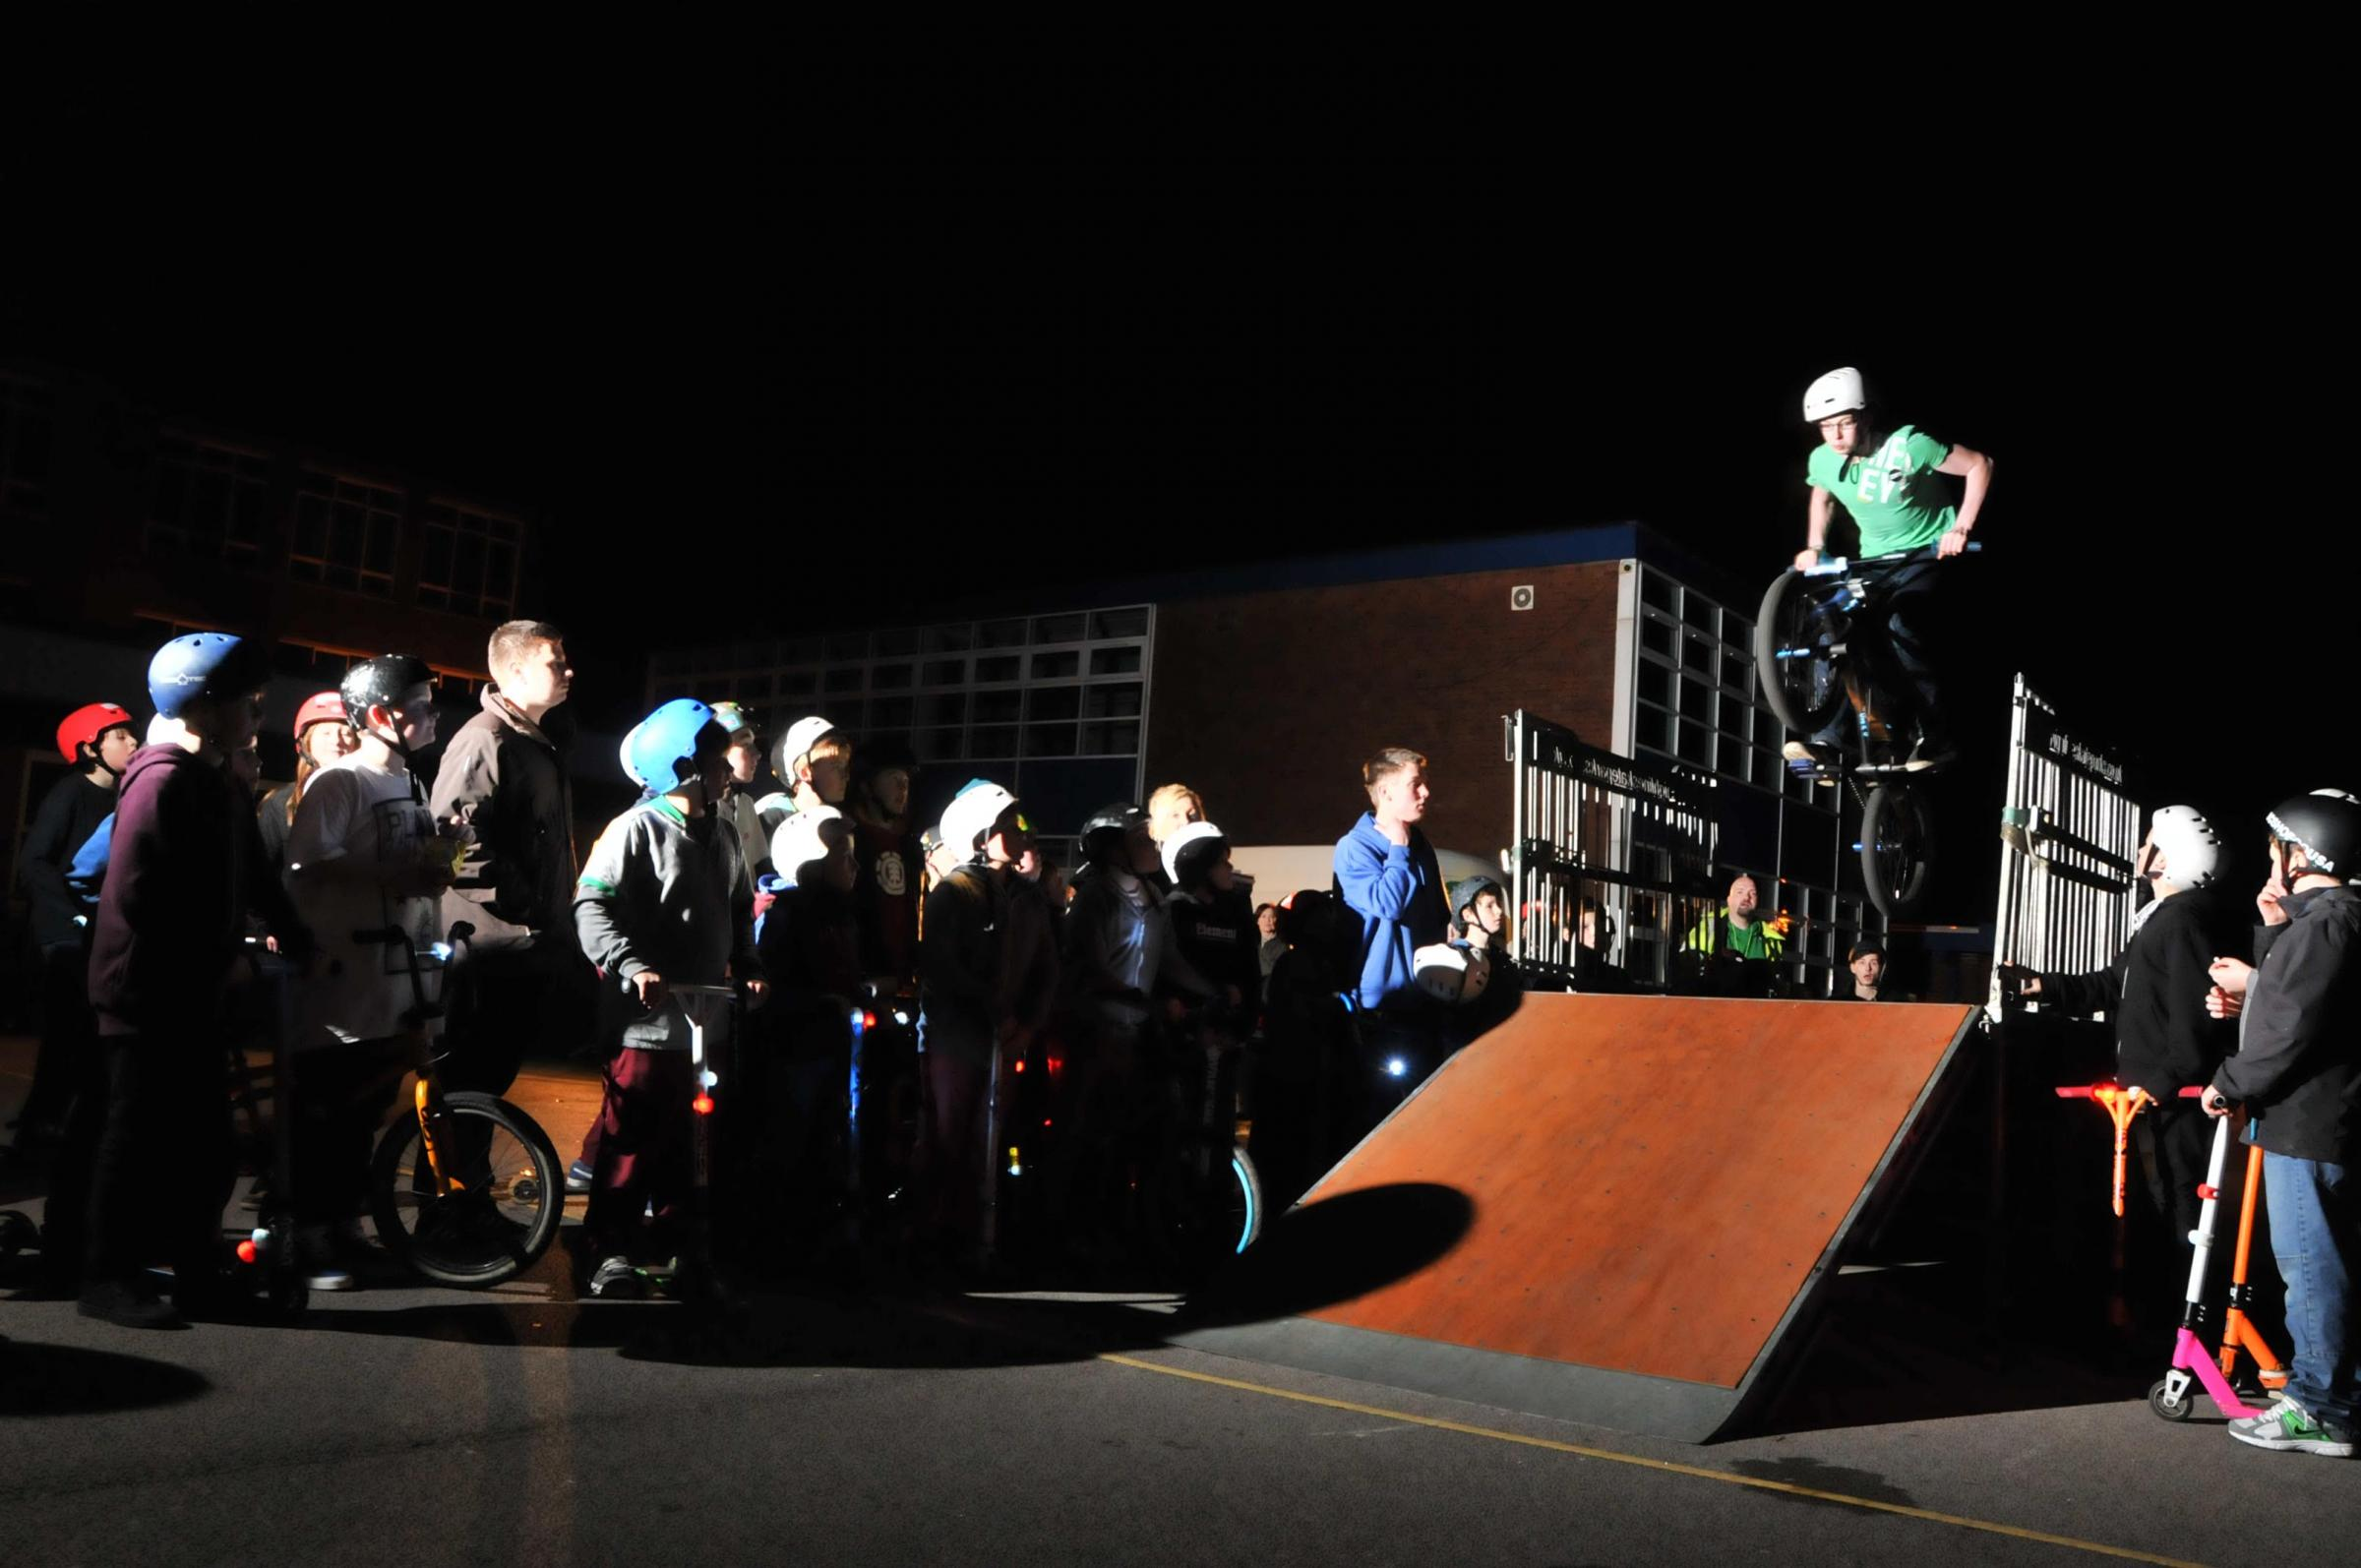 PEDAL POWER: Weaverham community illuminates safe cycling